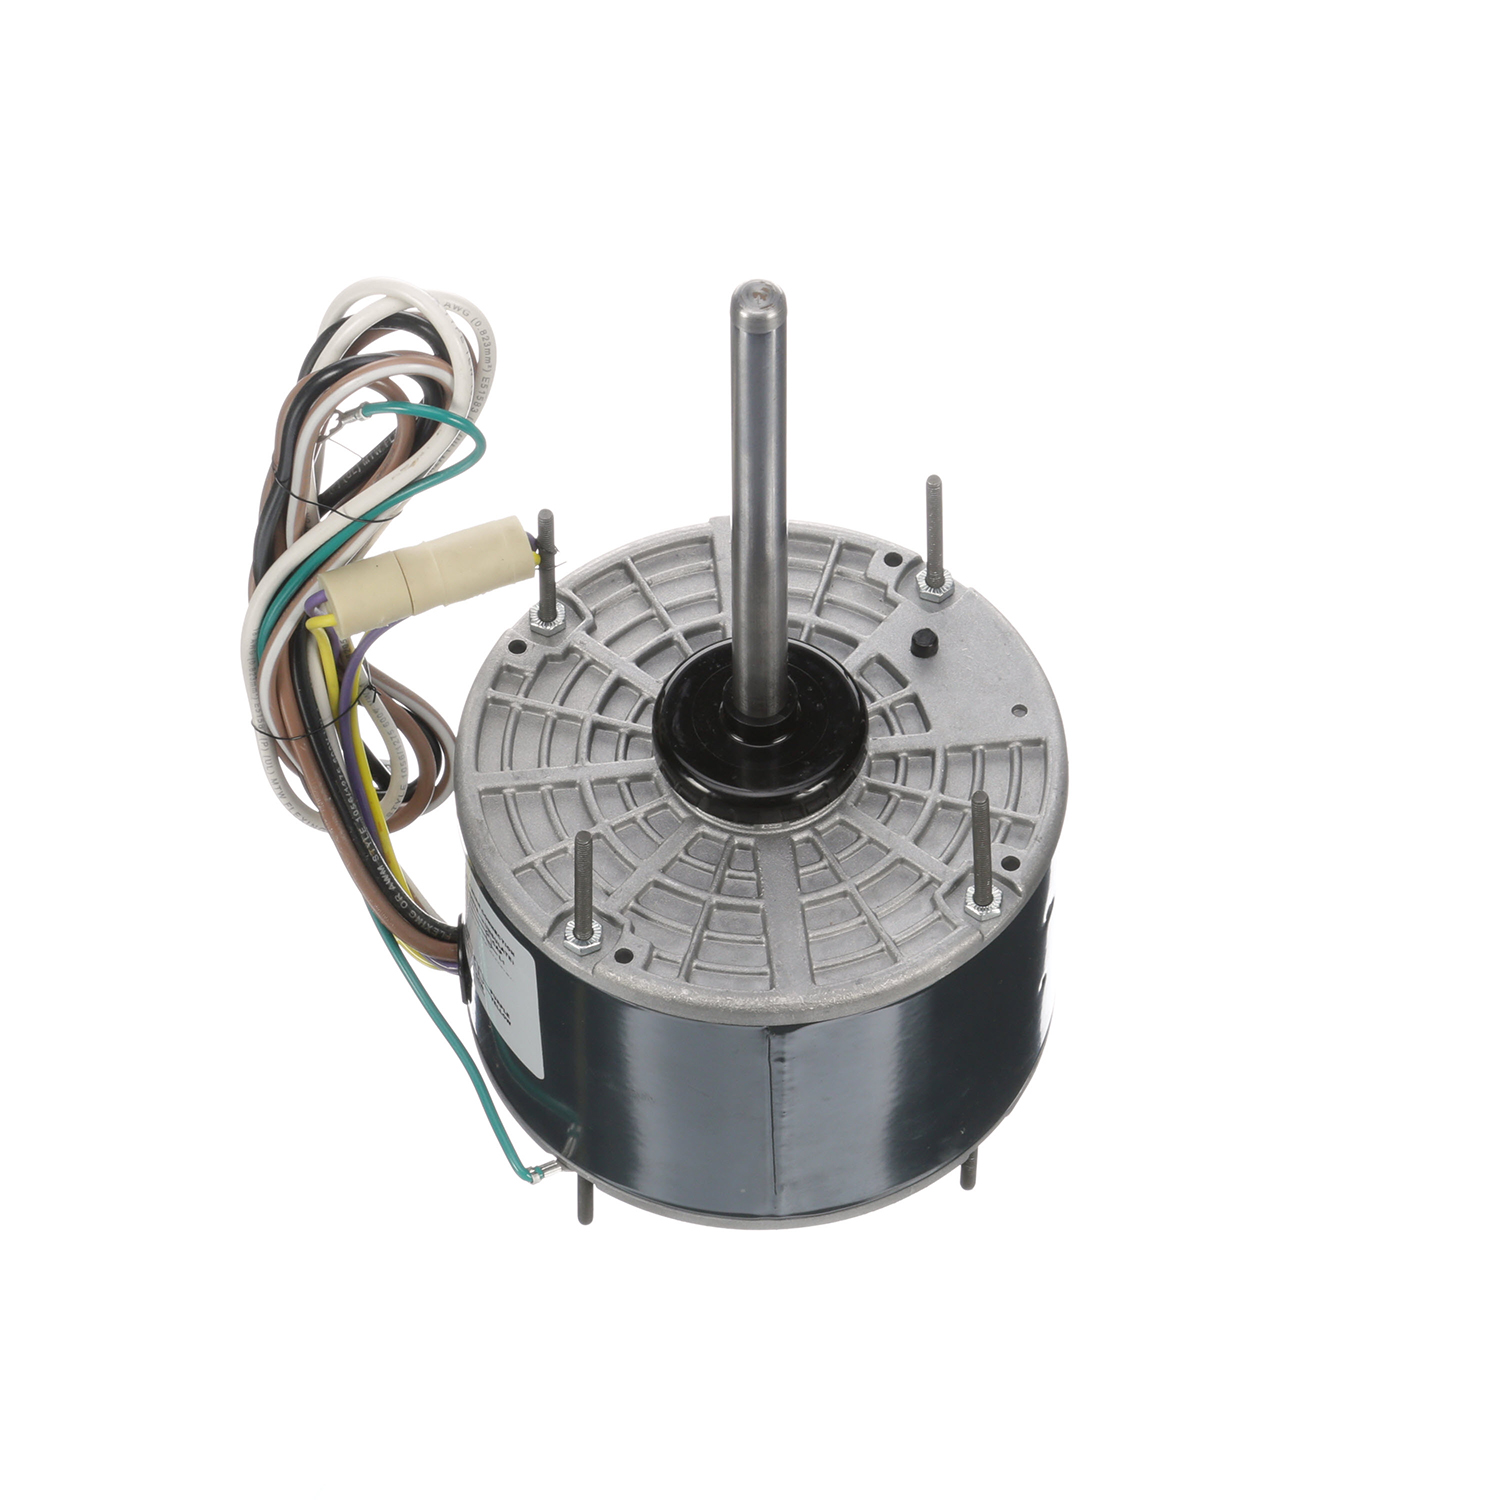 48Y FR PSC Condenser Fan Mtr, 1/6 HP, 1075 RPM, 208-230 V, Replaces